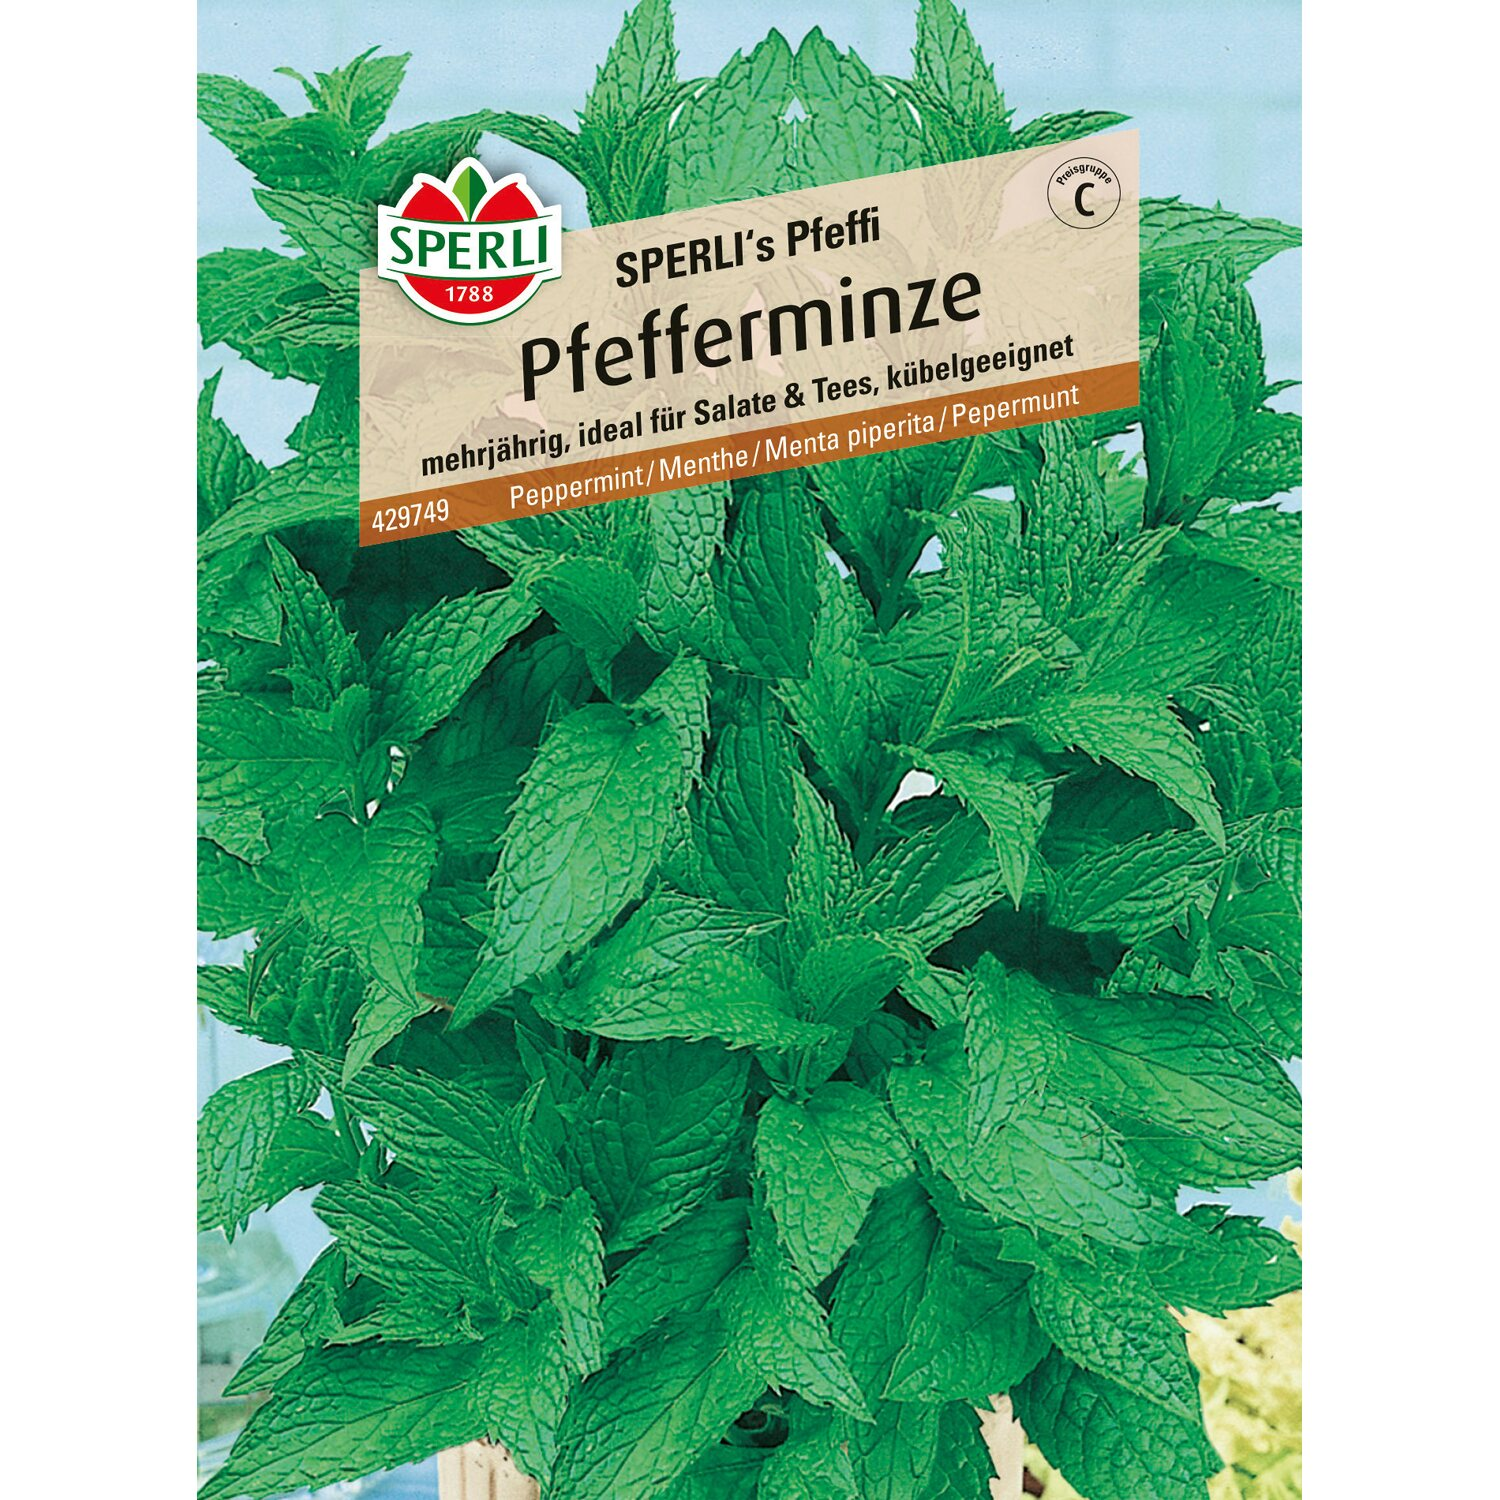 Sperli Pfefferminze Sperlis Pfeffi